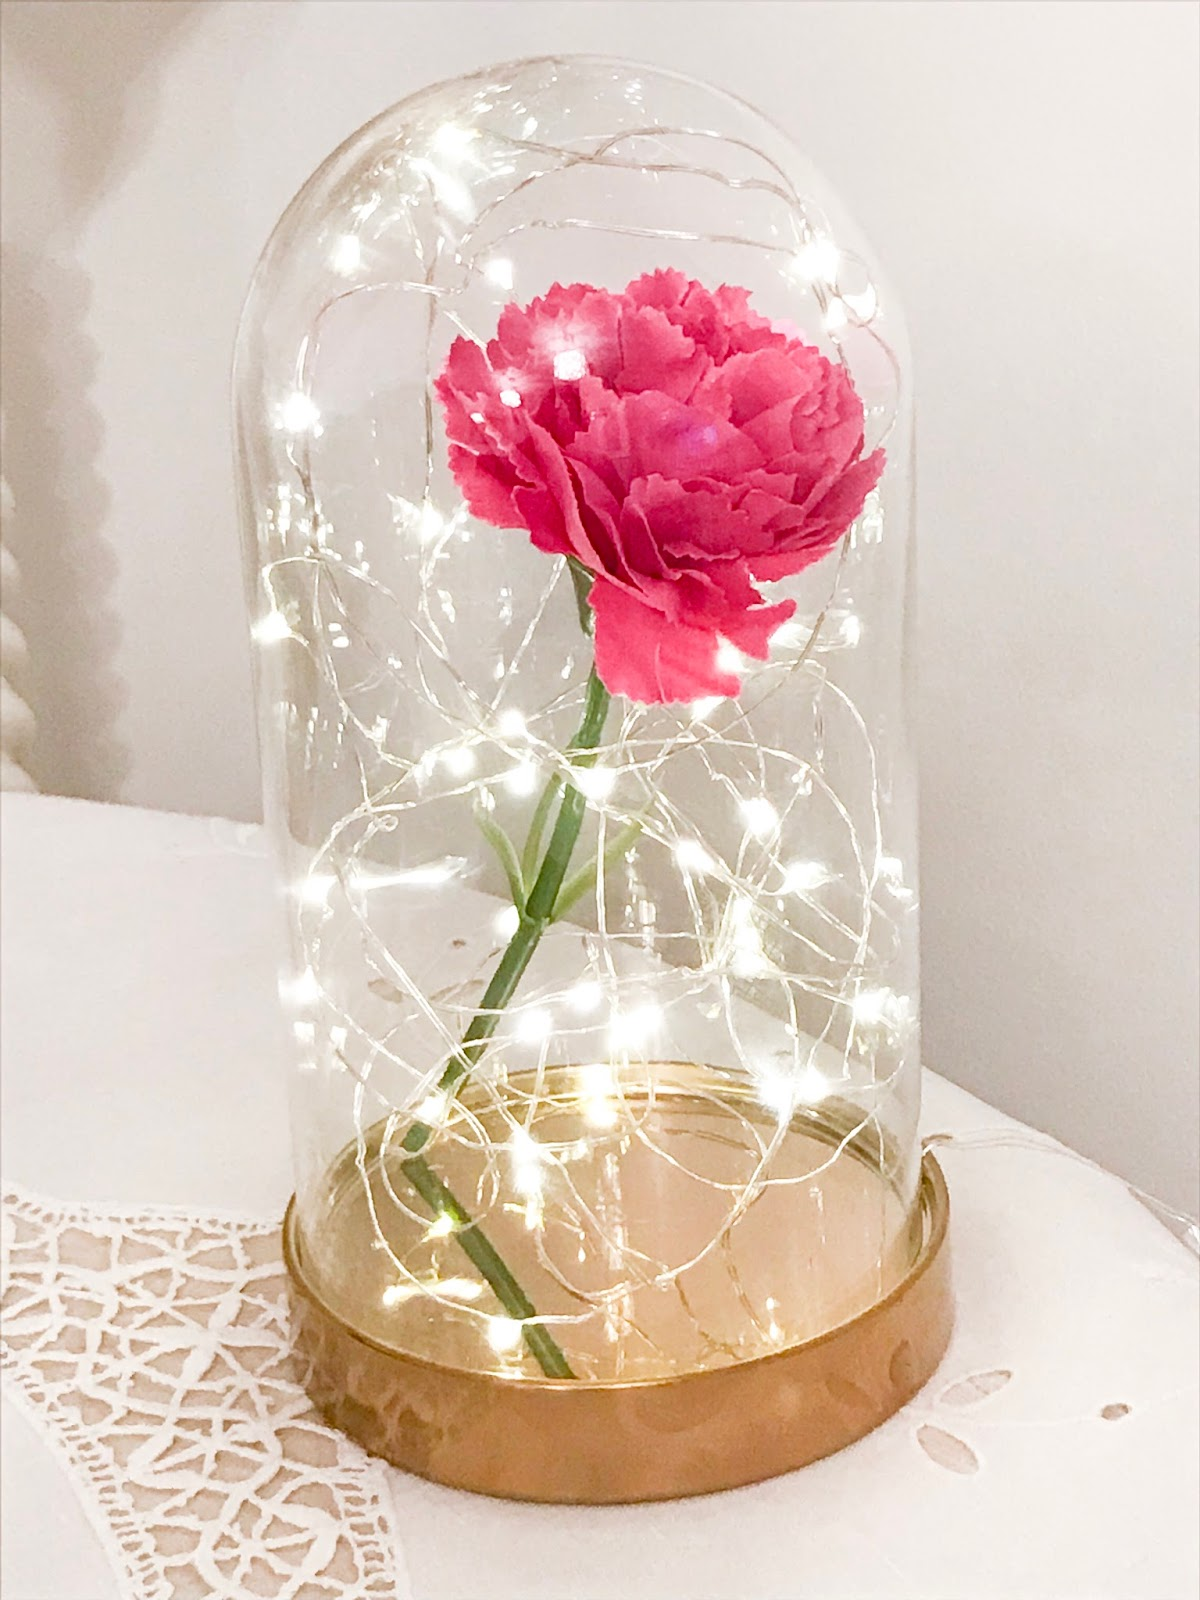 How to make diy beauty the beast inspired bell jar for under 10 how to make diy beauty the beast bell jar for under 10 izmirmasajfo